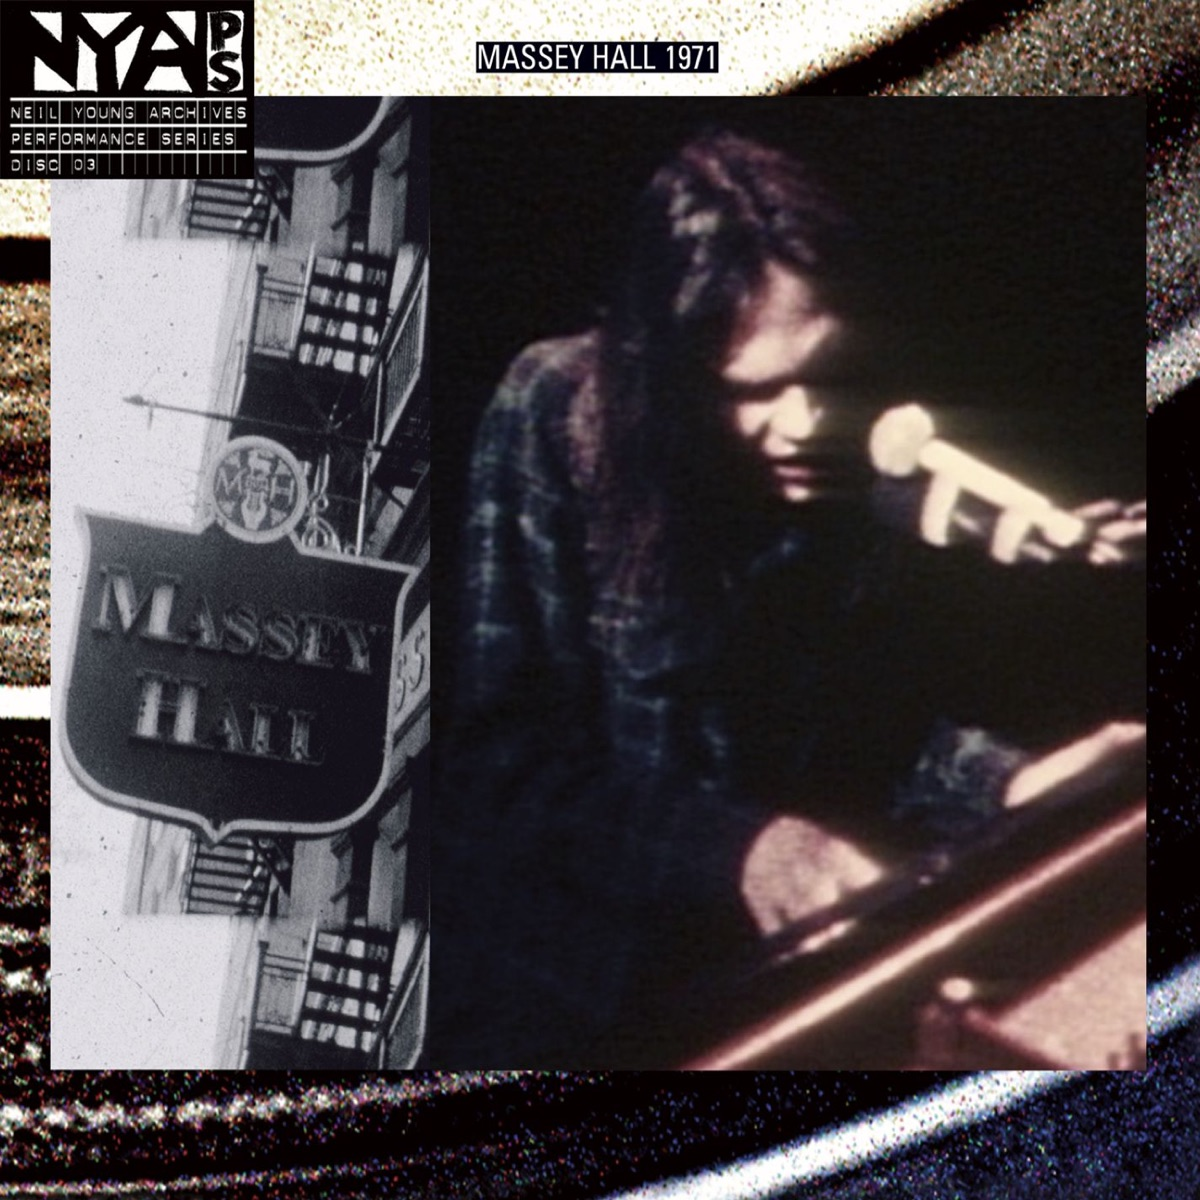 Live At Massey Hall 1971 Deluxe Version Neil Young CD cover